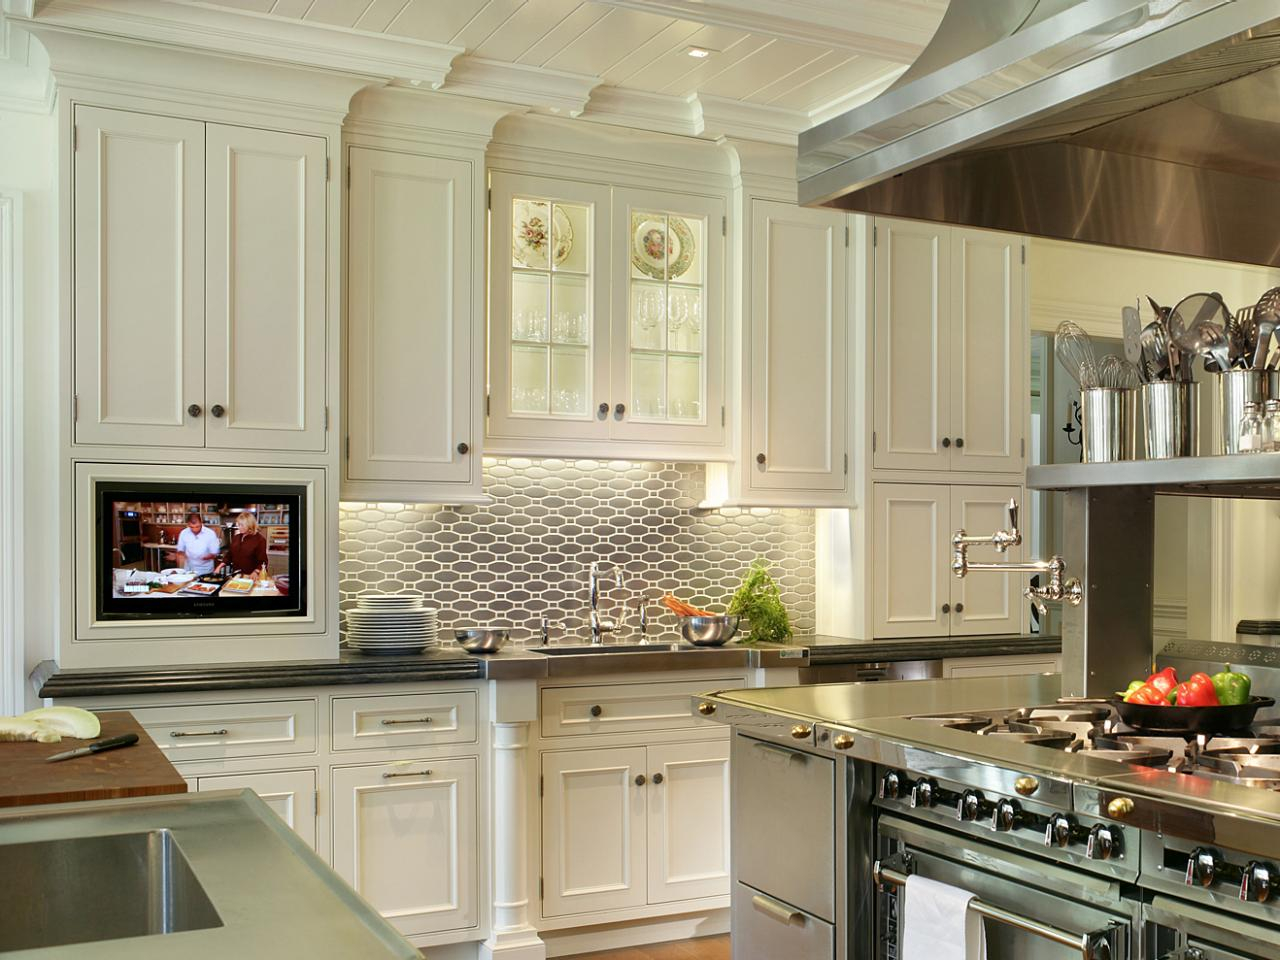 Extra Tall Upper Kitchen Cabinets • Kitchen Cabinet Ideas